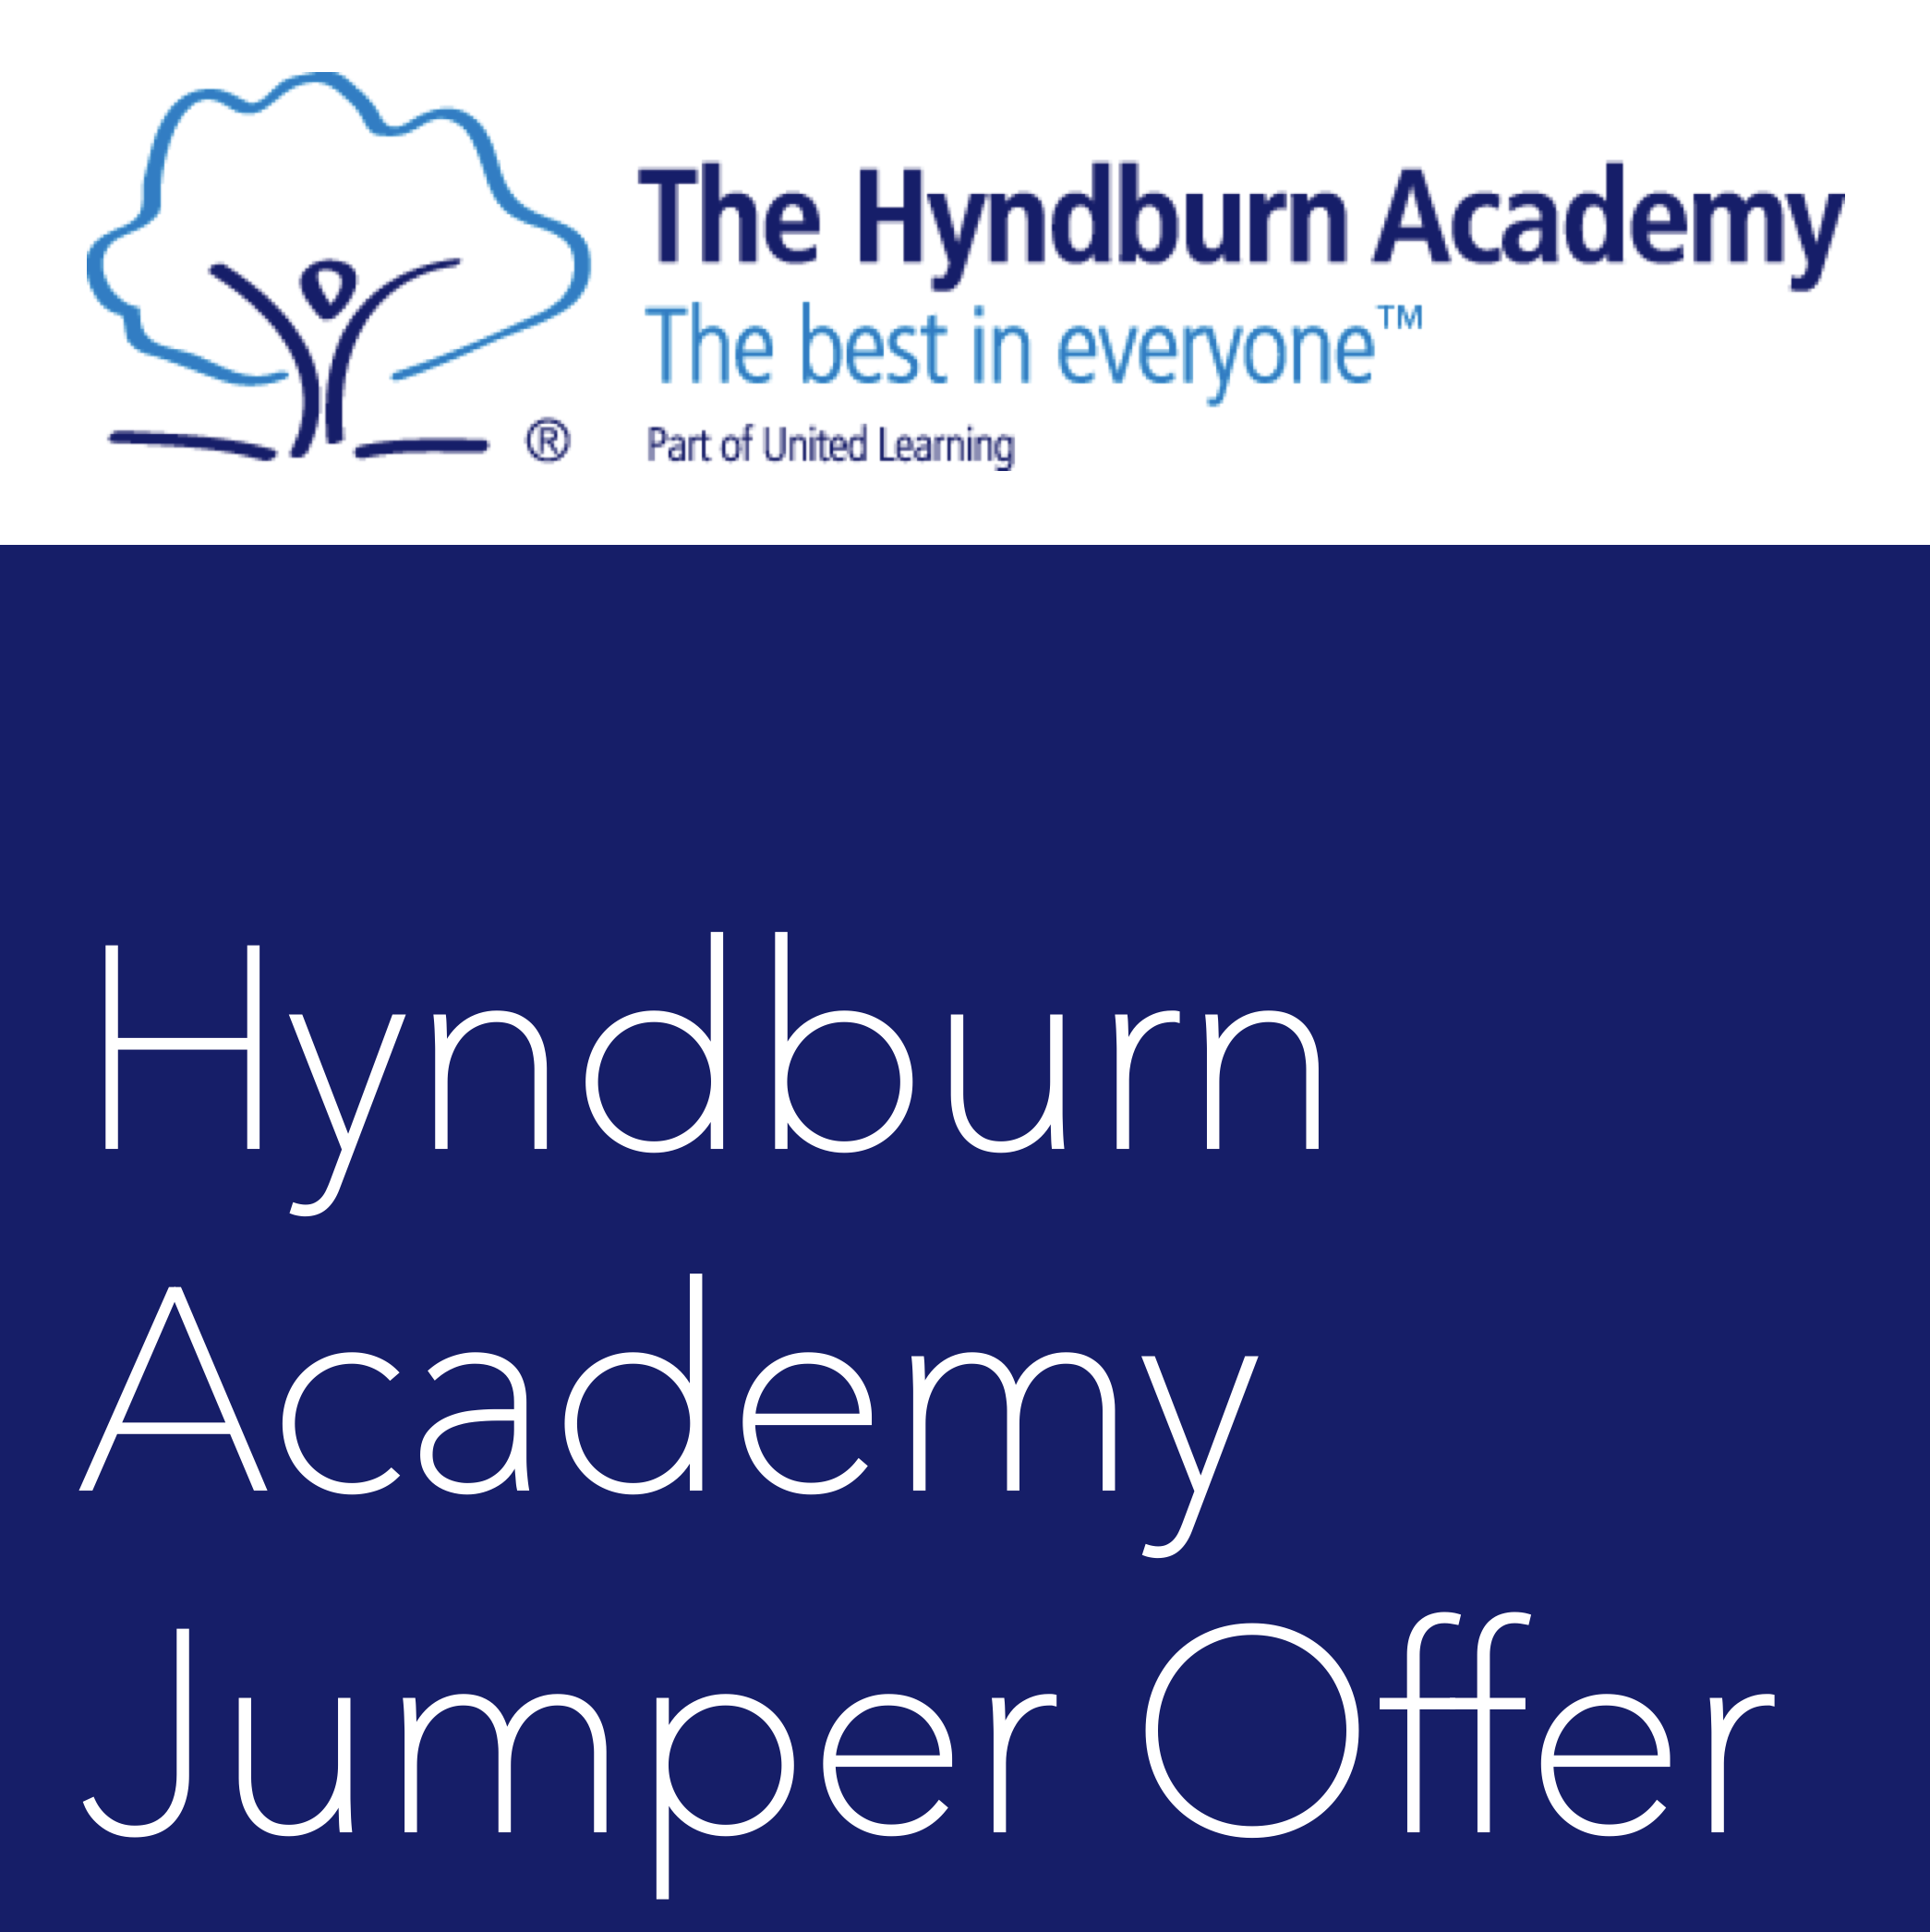 Hyndburn Academy Jumper Offer